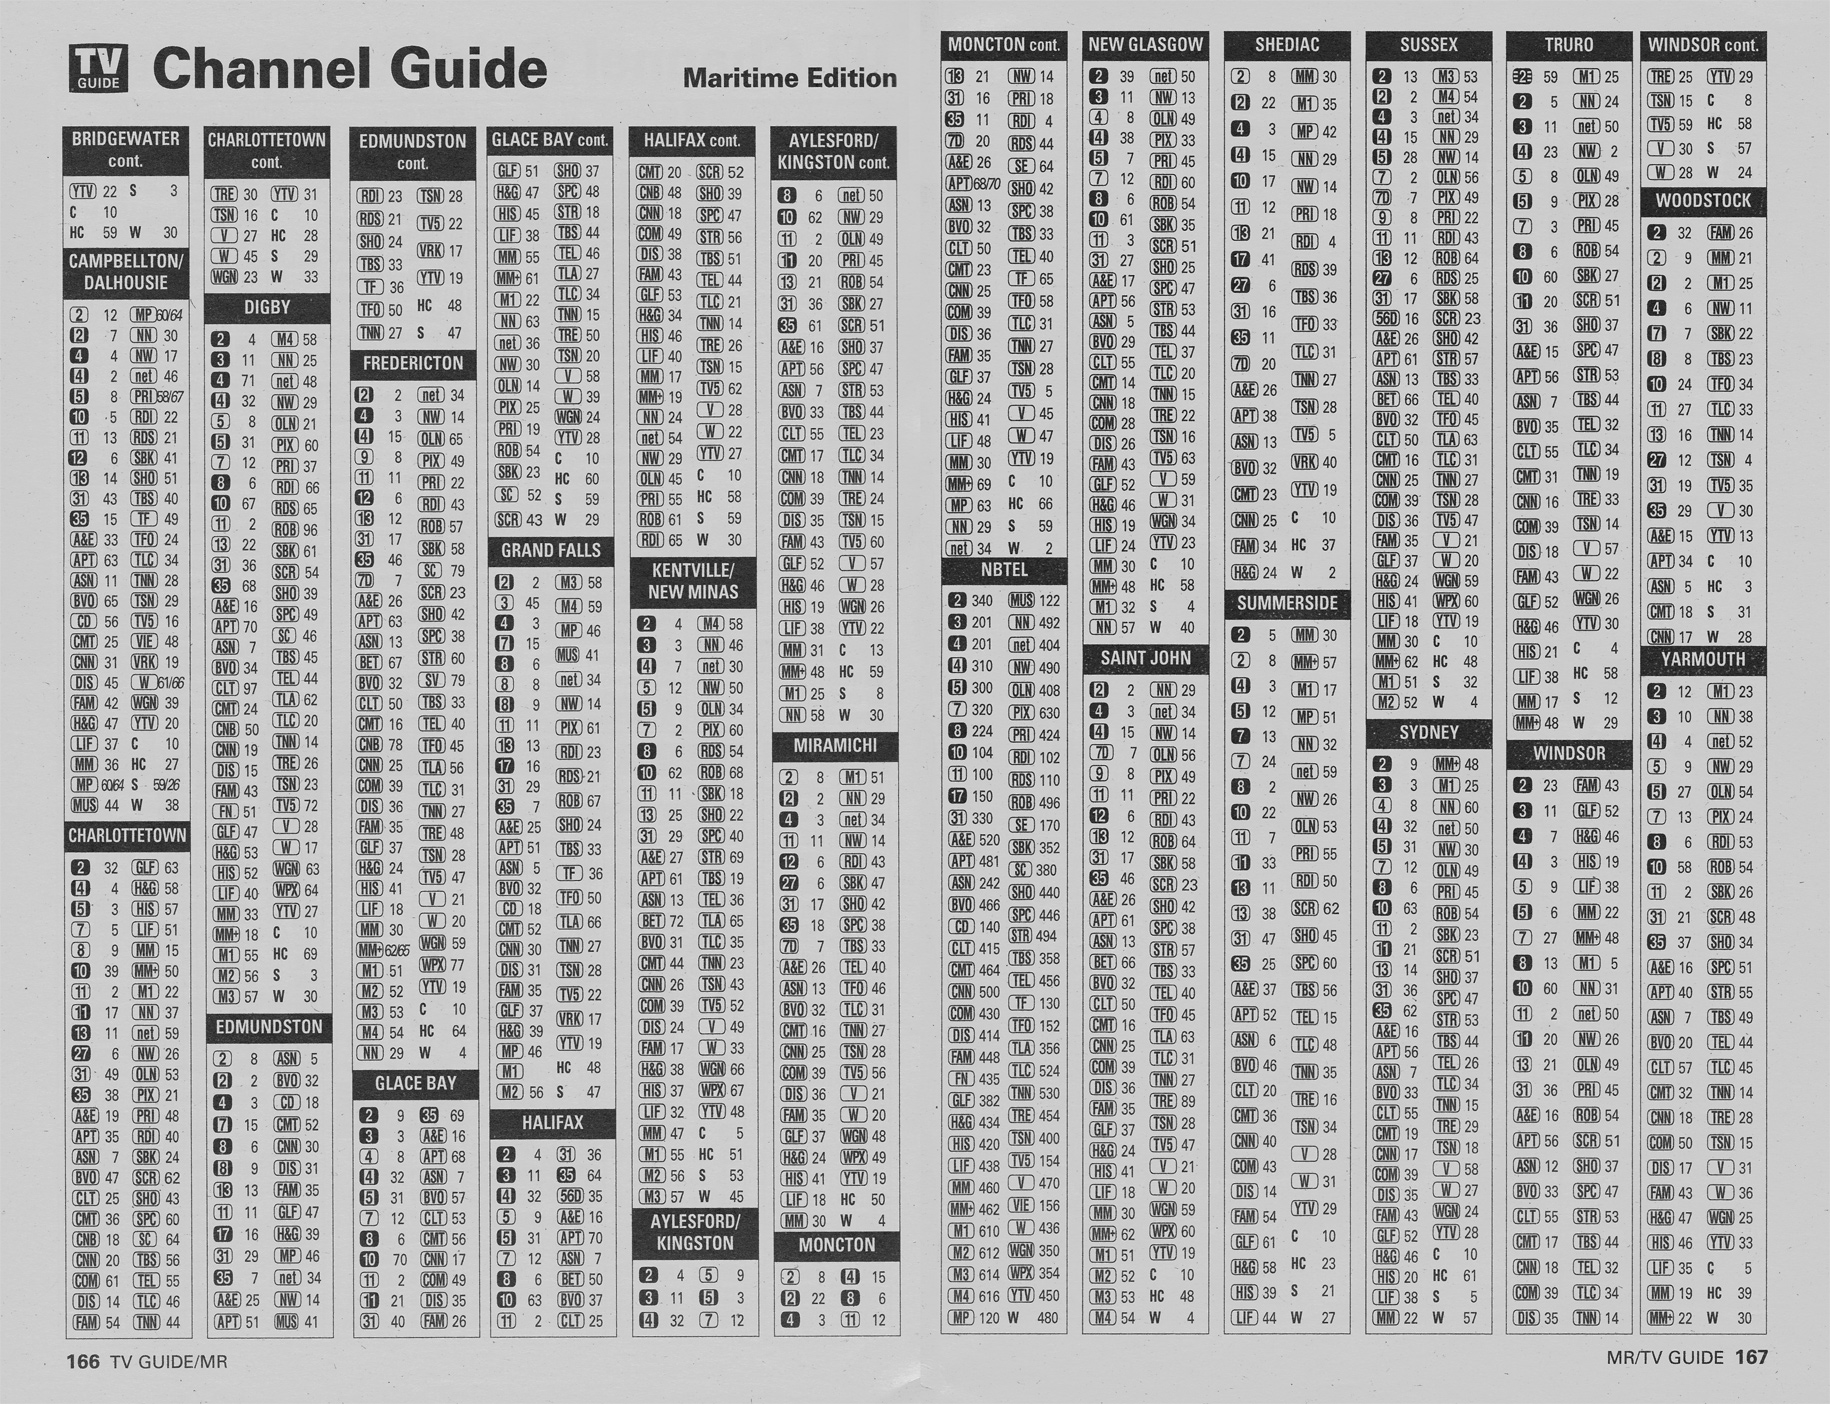 TV Guide August 24 2002 Maritime Edition Channel Guide